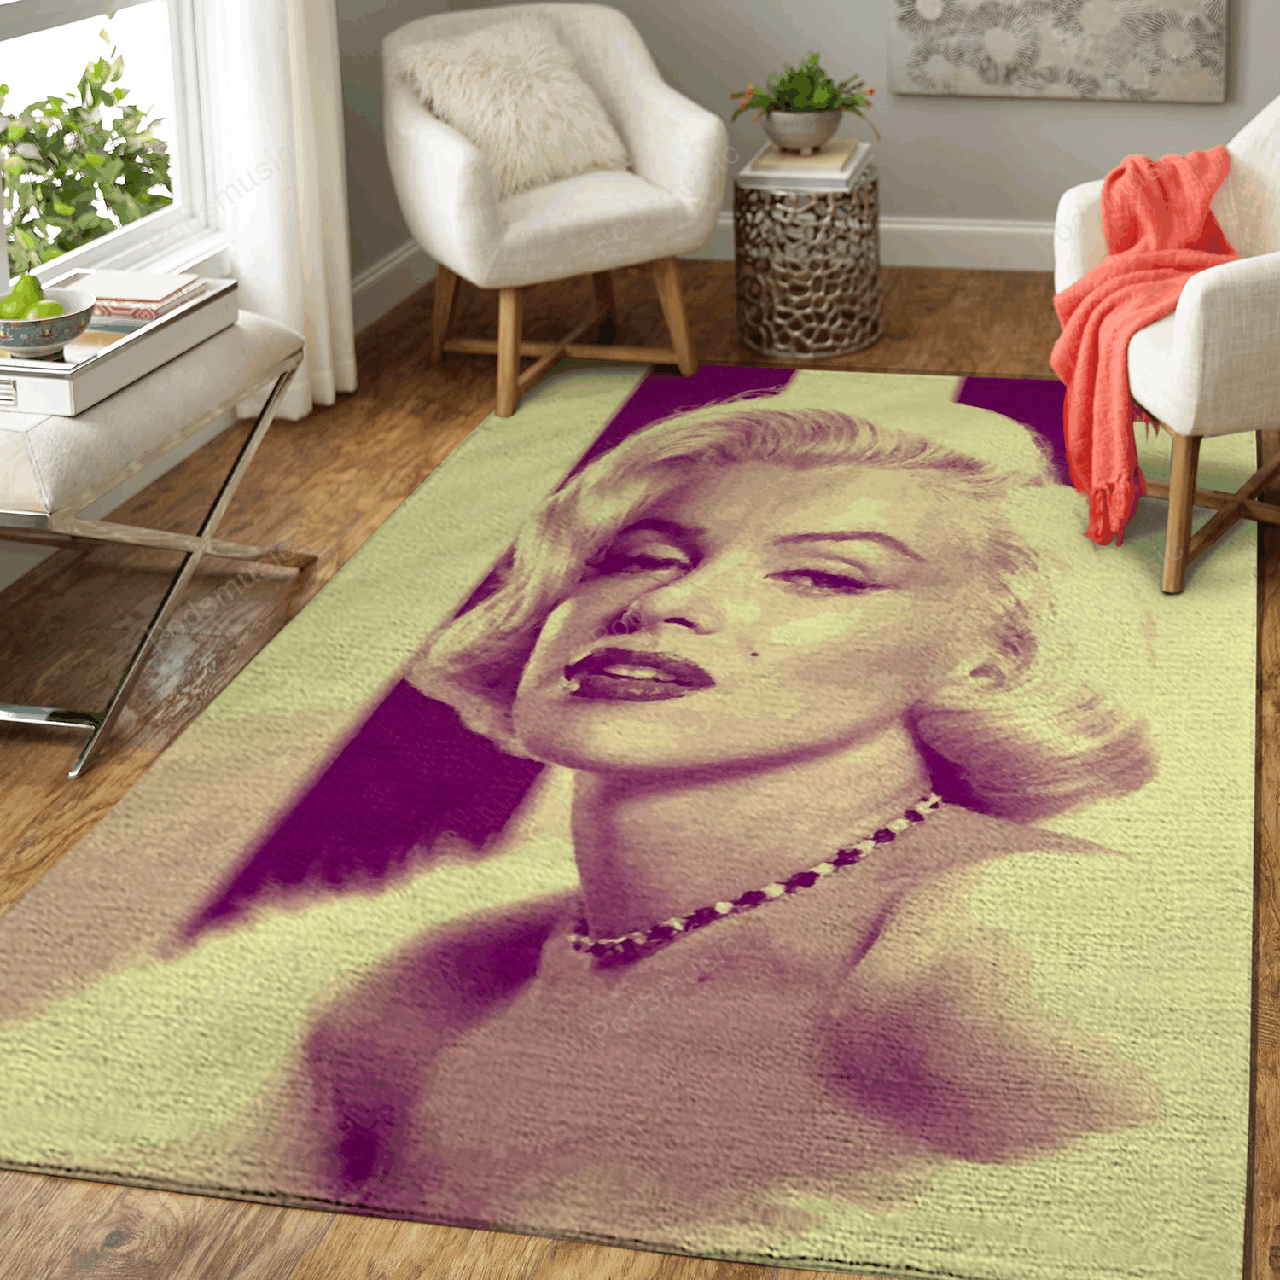 Monroe - Music Vintage Art For Fans Area Rug Living Room Carpet Floor Decor